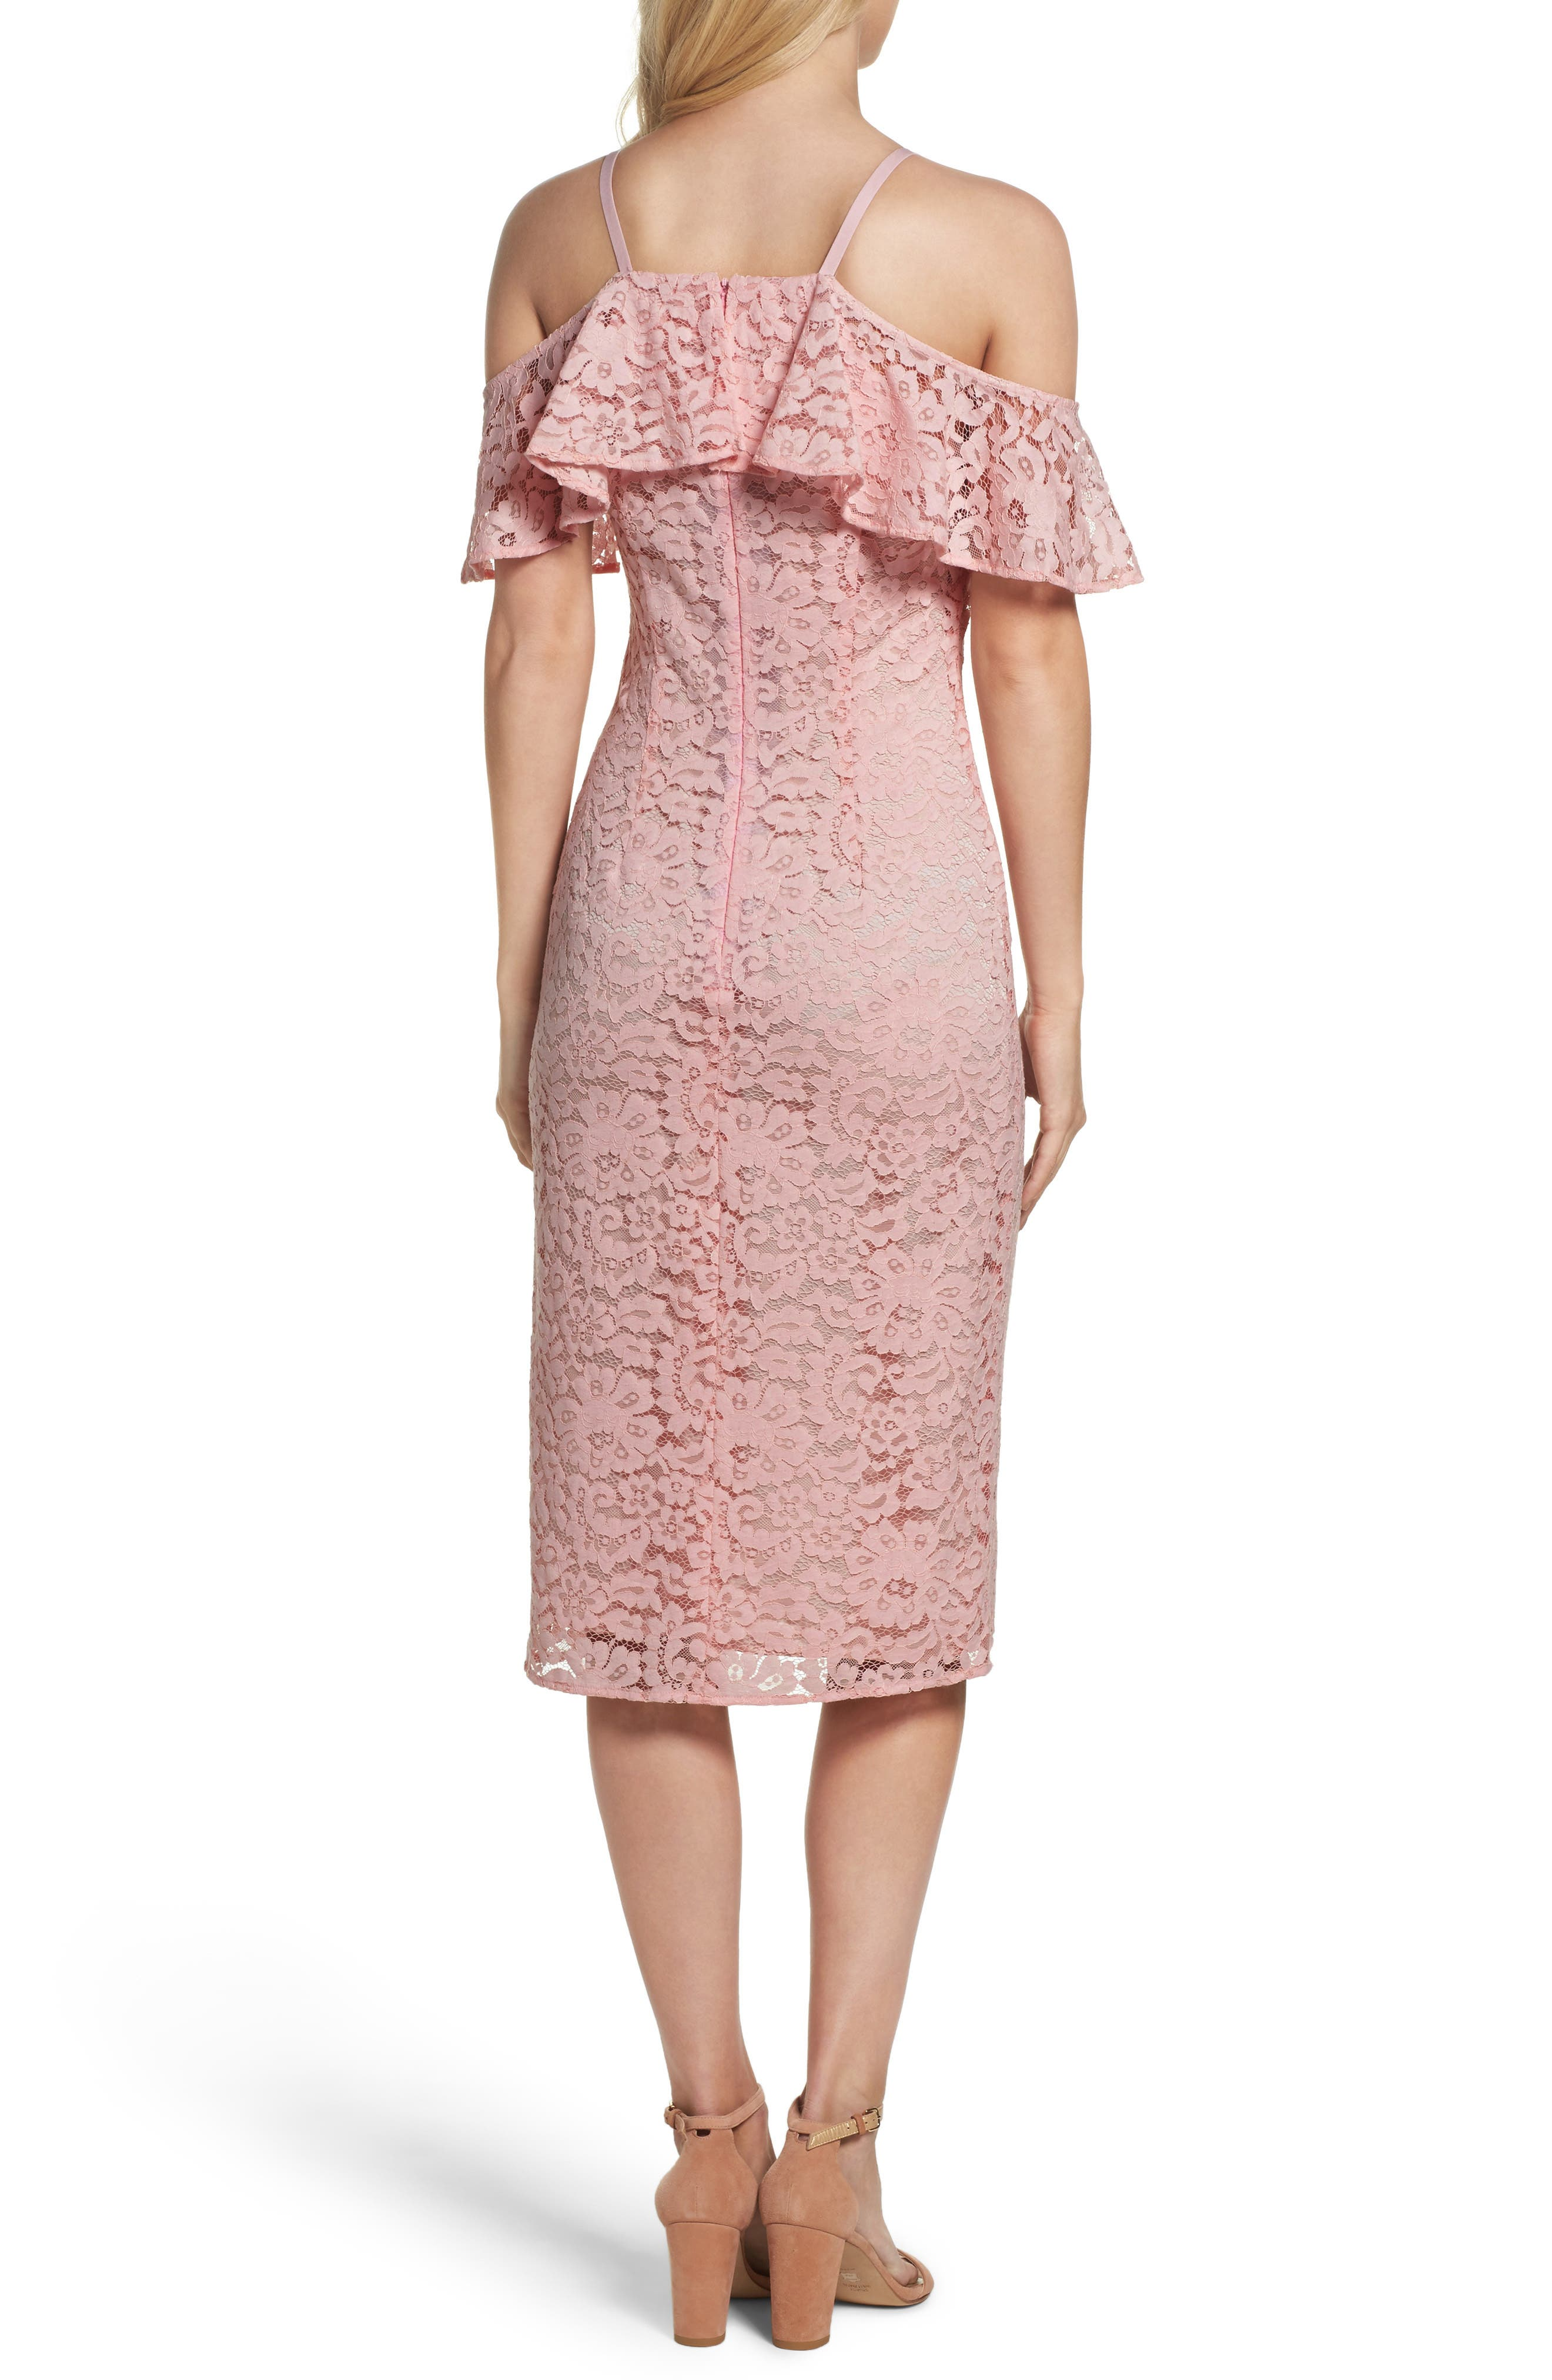 Mysterious Off the Shoulder Dress,                             Alternate thumbnail 2, color,                             Pink Champagne